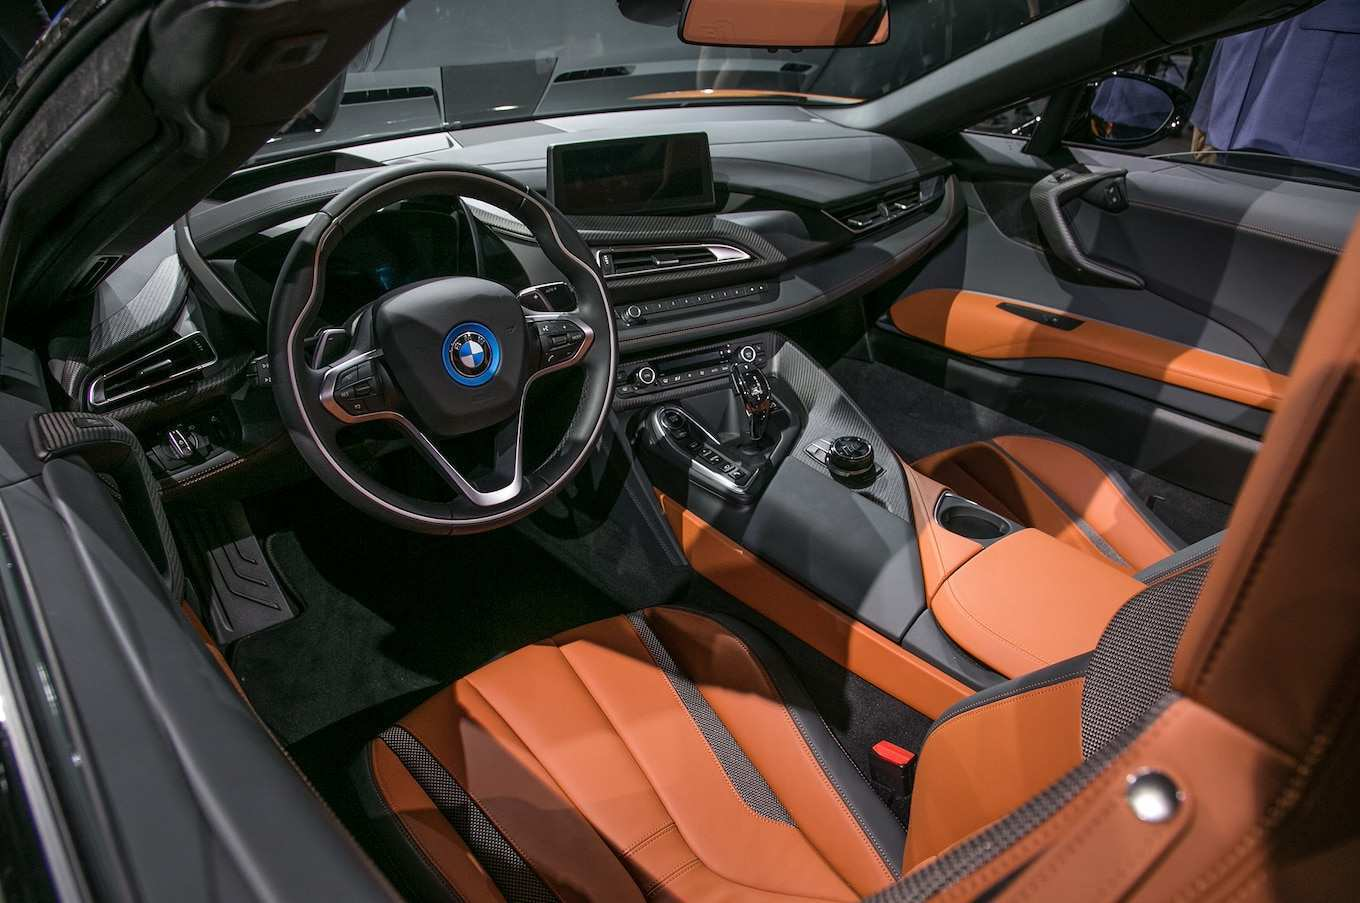 13 All New New Bmw I8 Roadster 2019 Interior Performance and New Engine for New Bmw I8 Roadster 2019 Interior